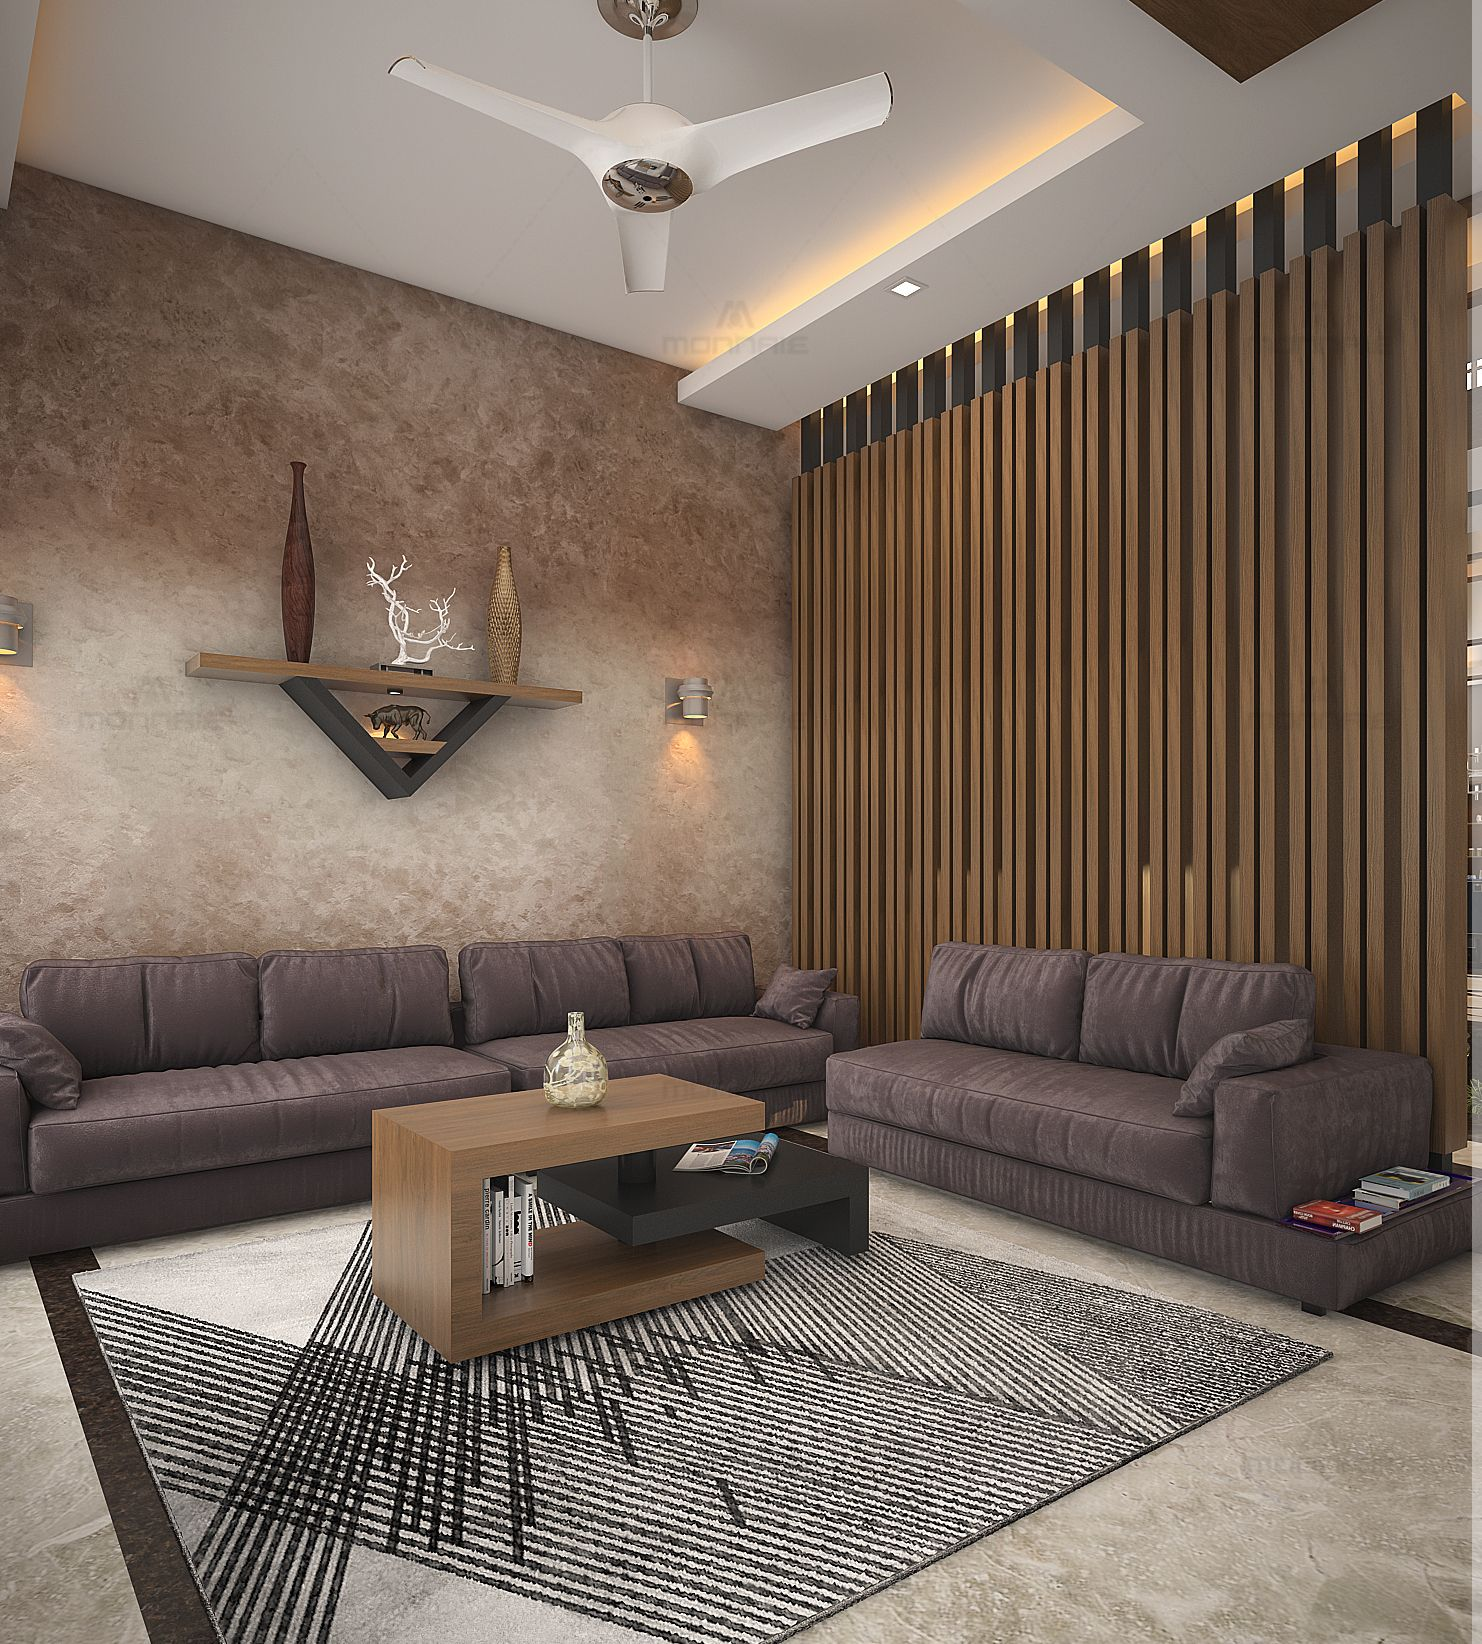 Best Wall Design You Can Try At Home Style Your Home At Www Monnaie In Livingroomdesigns Wal Living Room Designs Interior Design Living Room New Living Room